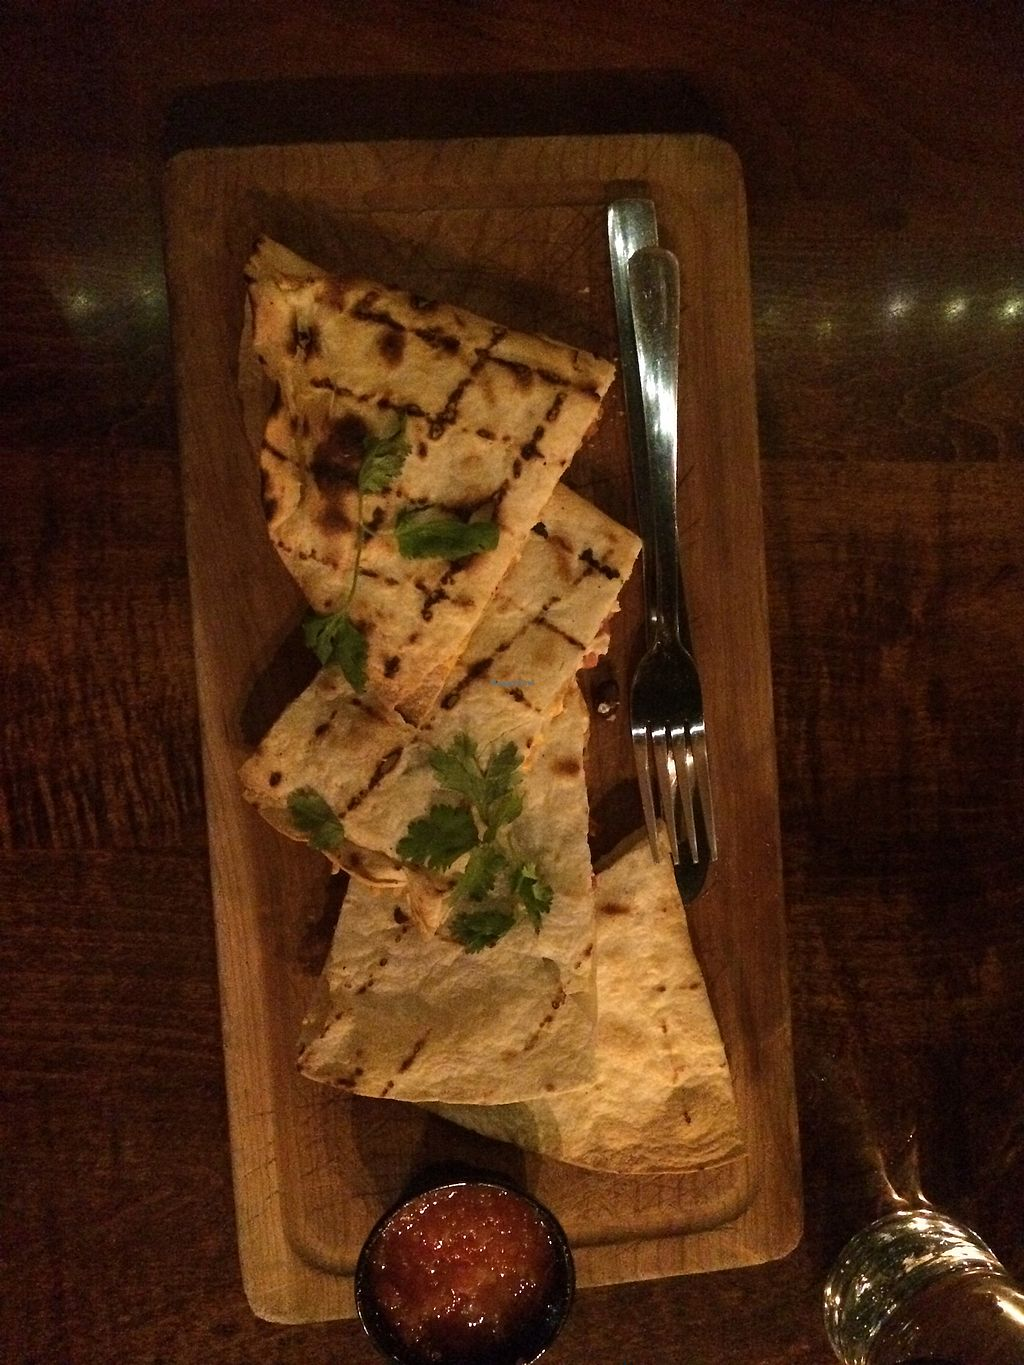 """Photo of Merchant Ale House  by <a href=""""/members/profile/fruitiJulie"""">fruitiJulie</a> <br/>Quesadilla with vegan cheese <br/> December 9, 2017  - <a href='/contact/abuse/image/34949/333745'>Report</a>"""